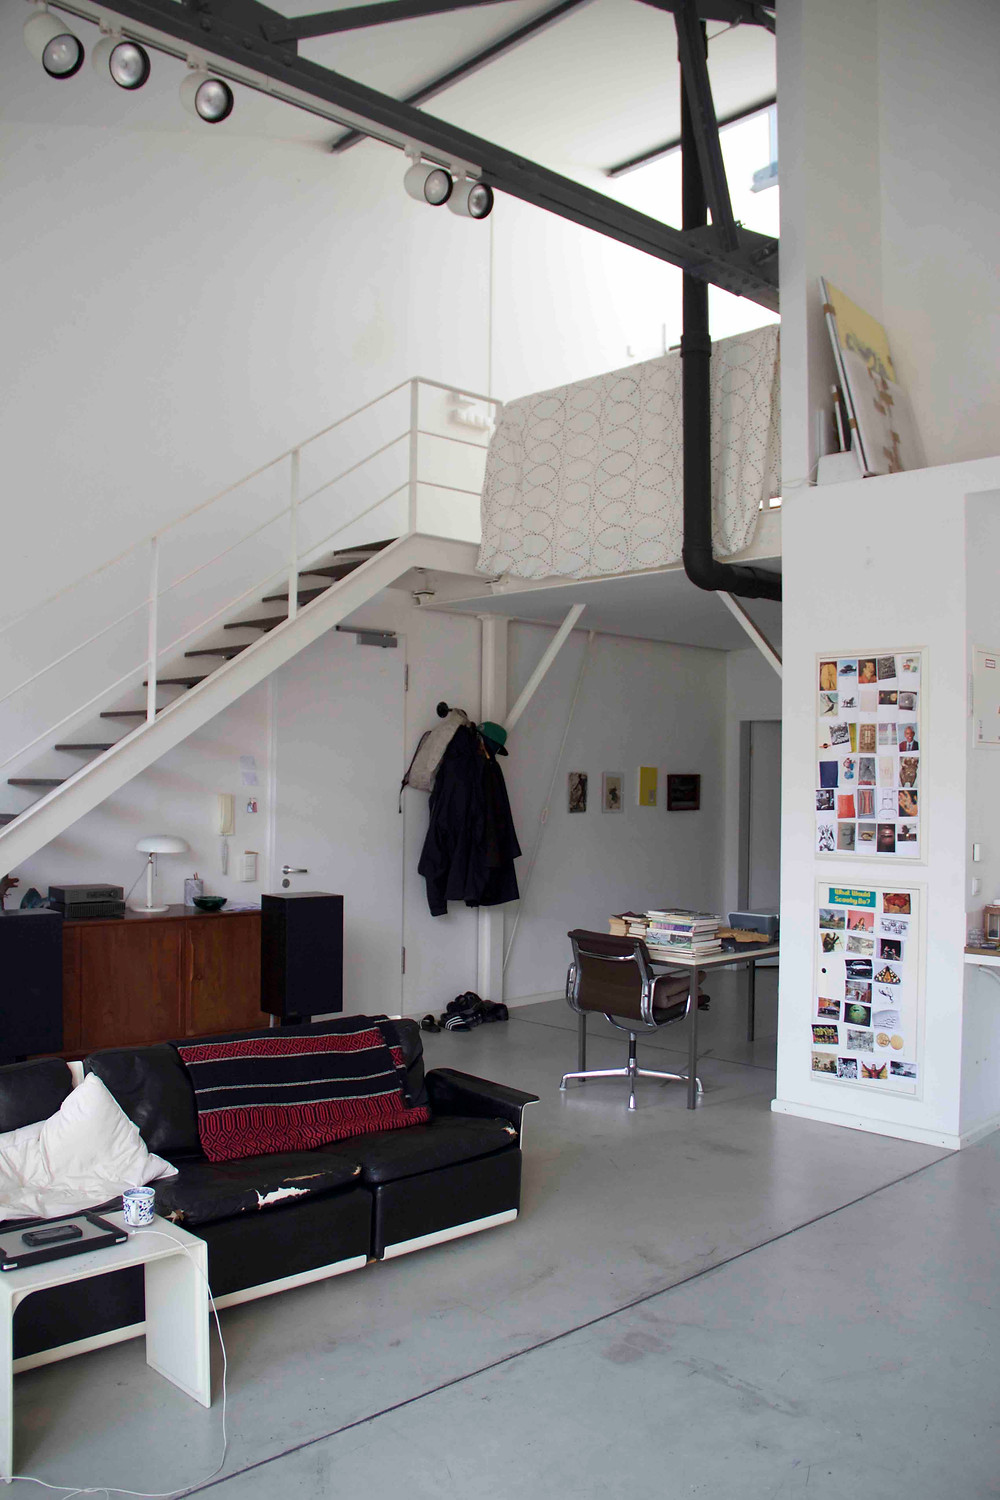 View of Jon Merz's studio with 'Image collection' on the wall